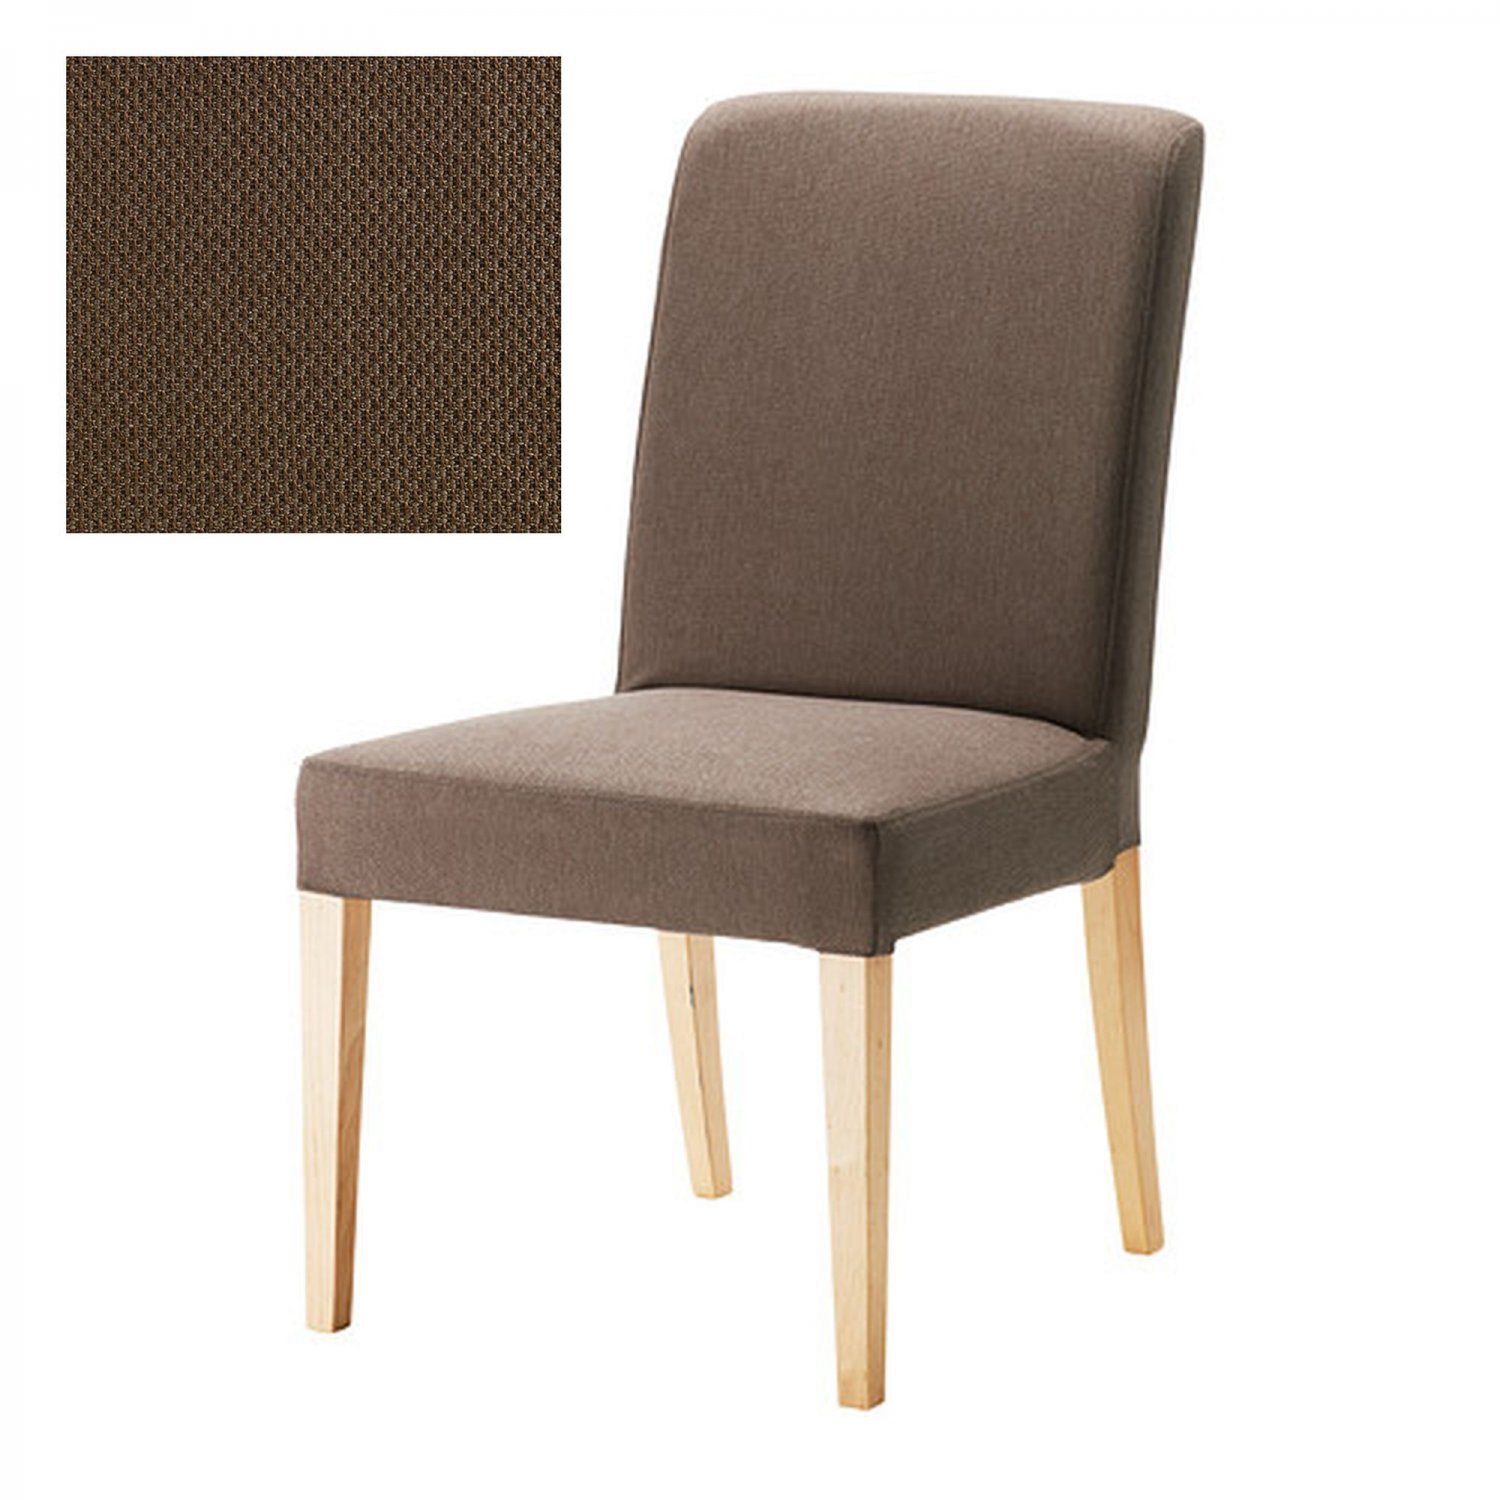 Ikea Henriksdal Chair Slipcover Cover 21 54cm Dansbo Medium Brown